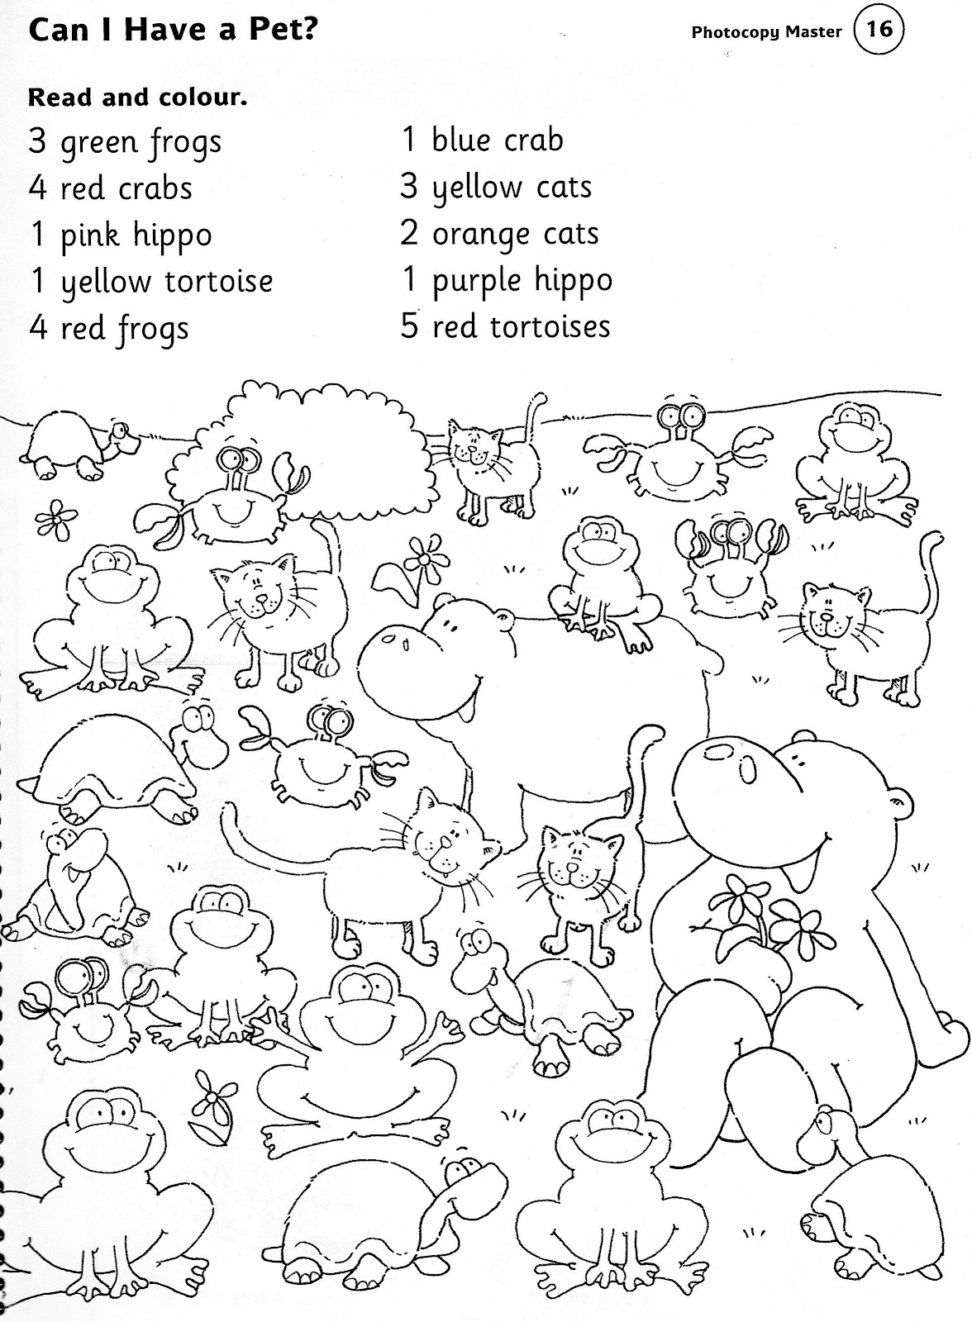 Worksheets Worksheet-animal worksheet animals worksheets for kindergarten brandonbrice us english animal photo images about kids on pinterest robert de niro and